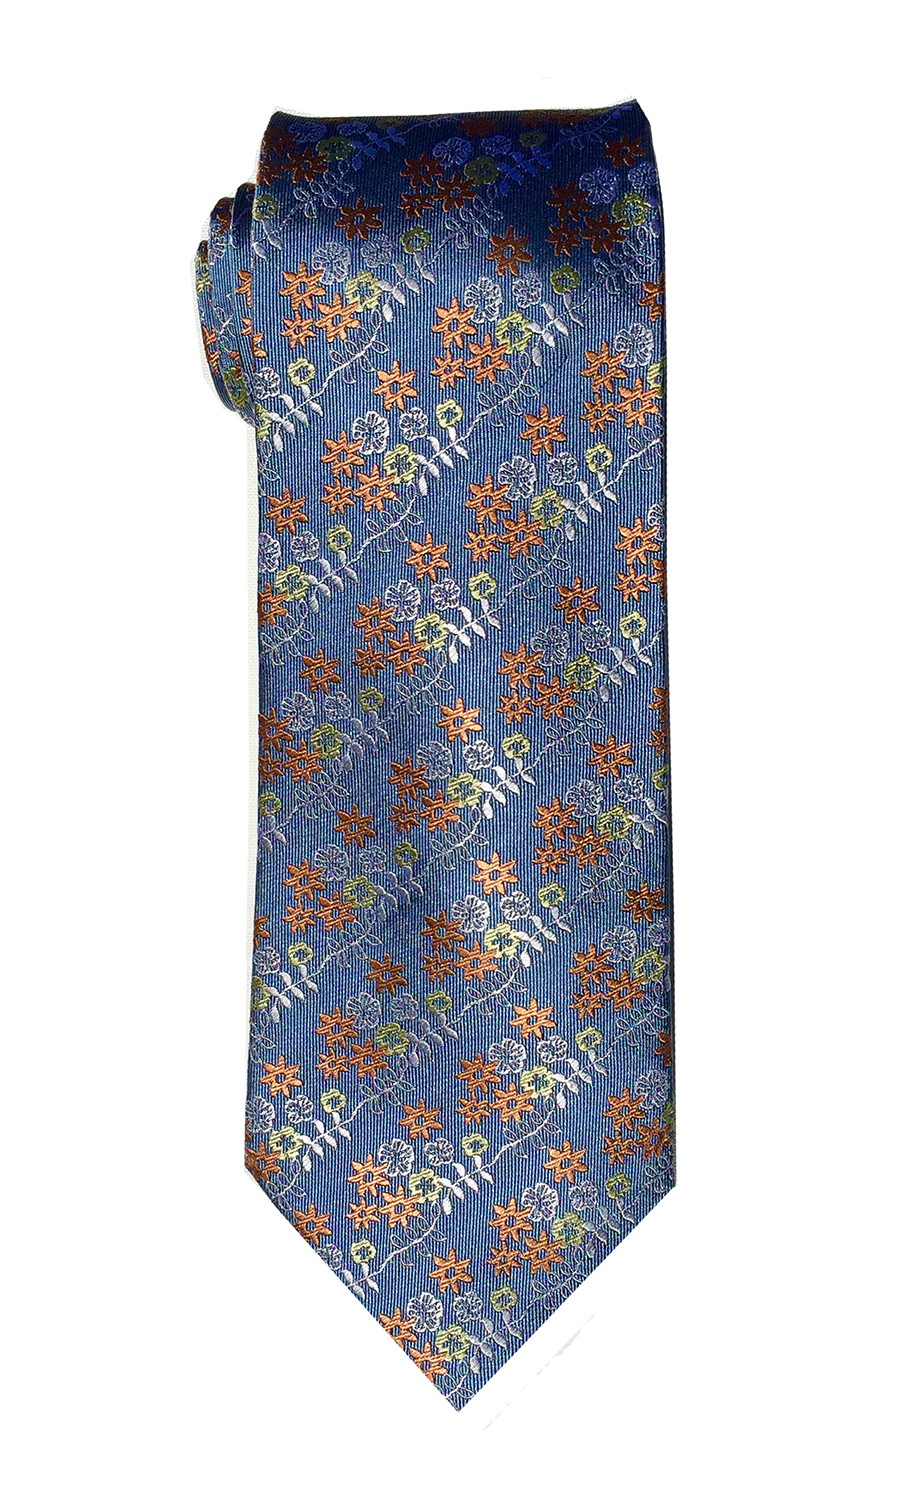 Foxtrot Charlie tie in periwinkle and orange